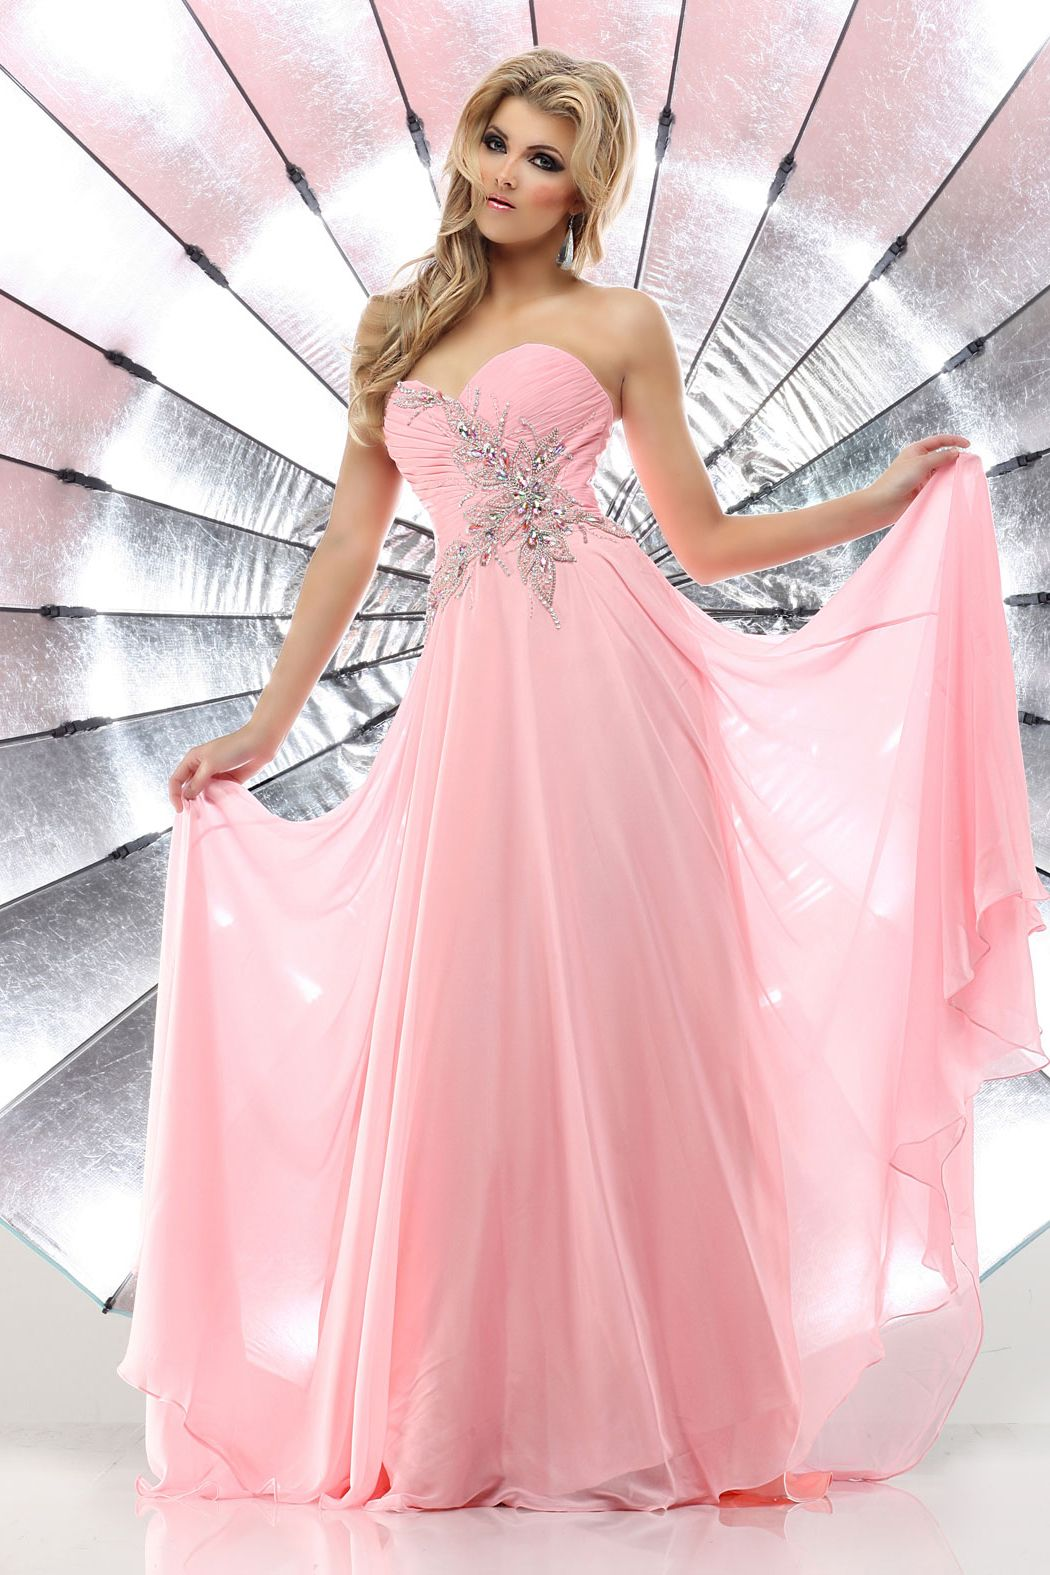 Light Pink and Silver Strapless Long Prom Dress | outfits ...